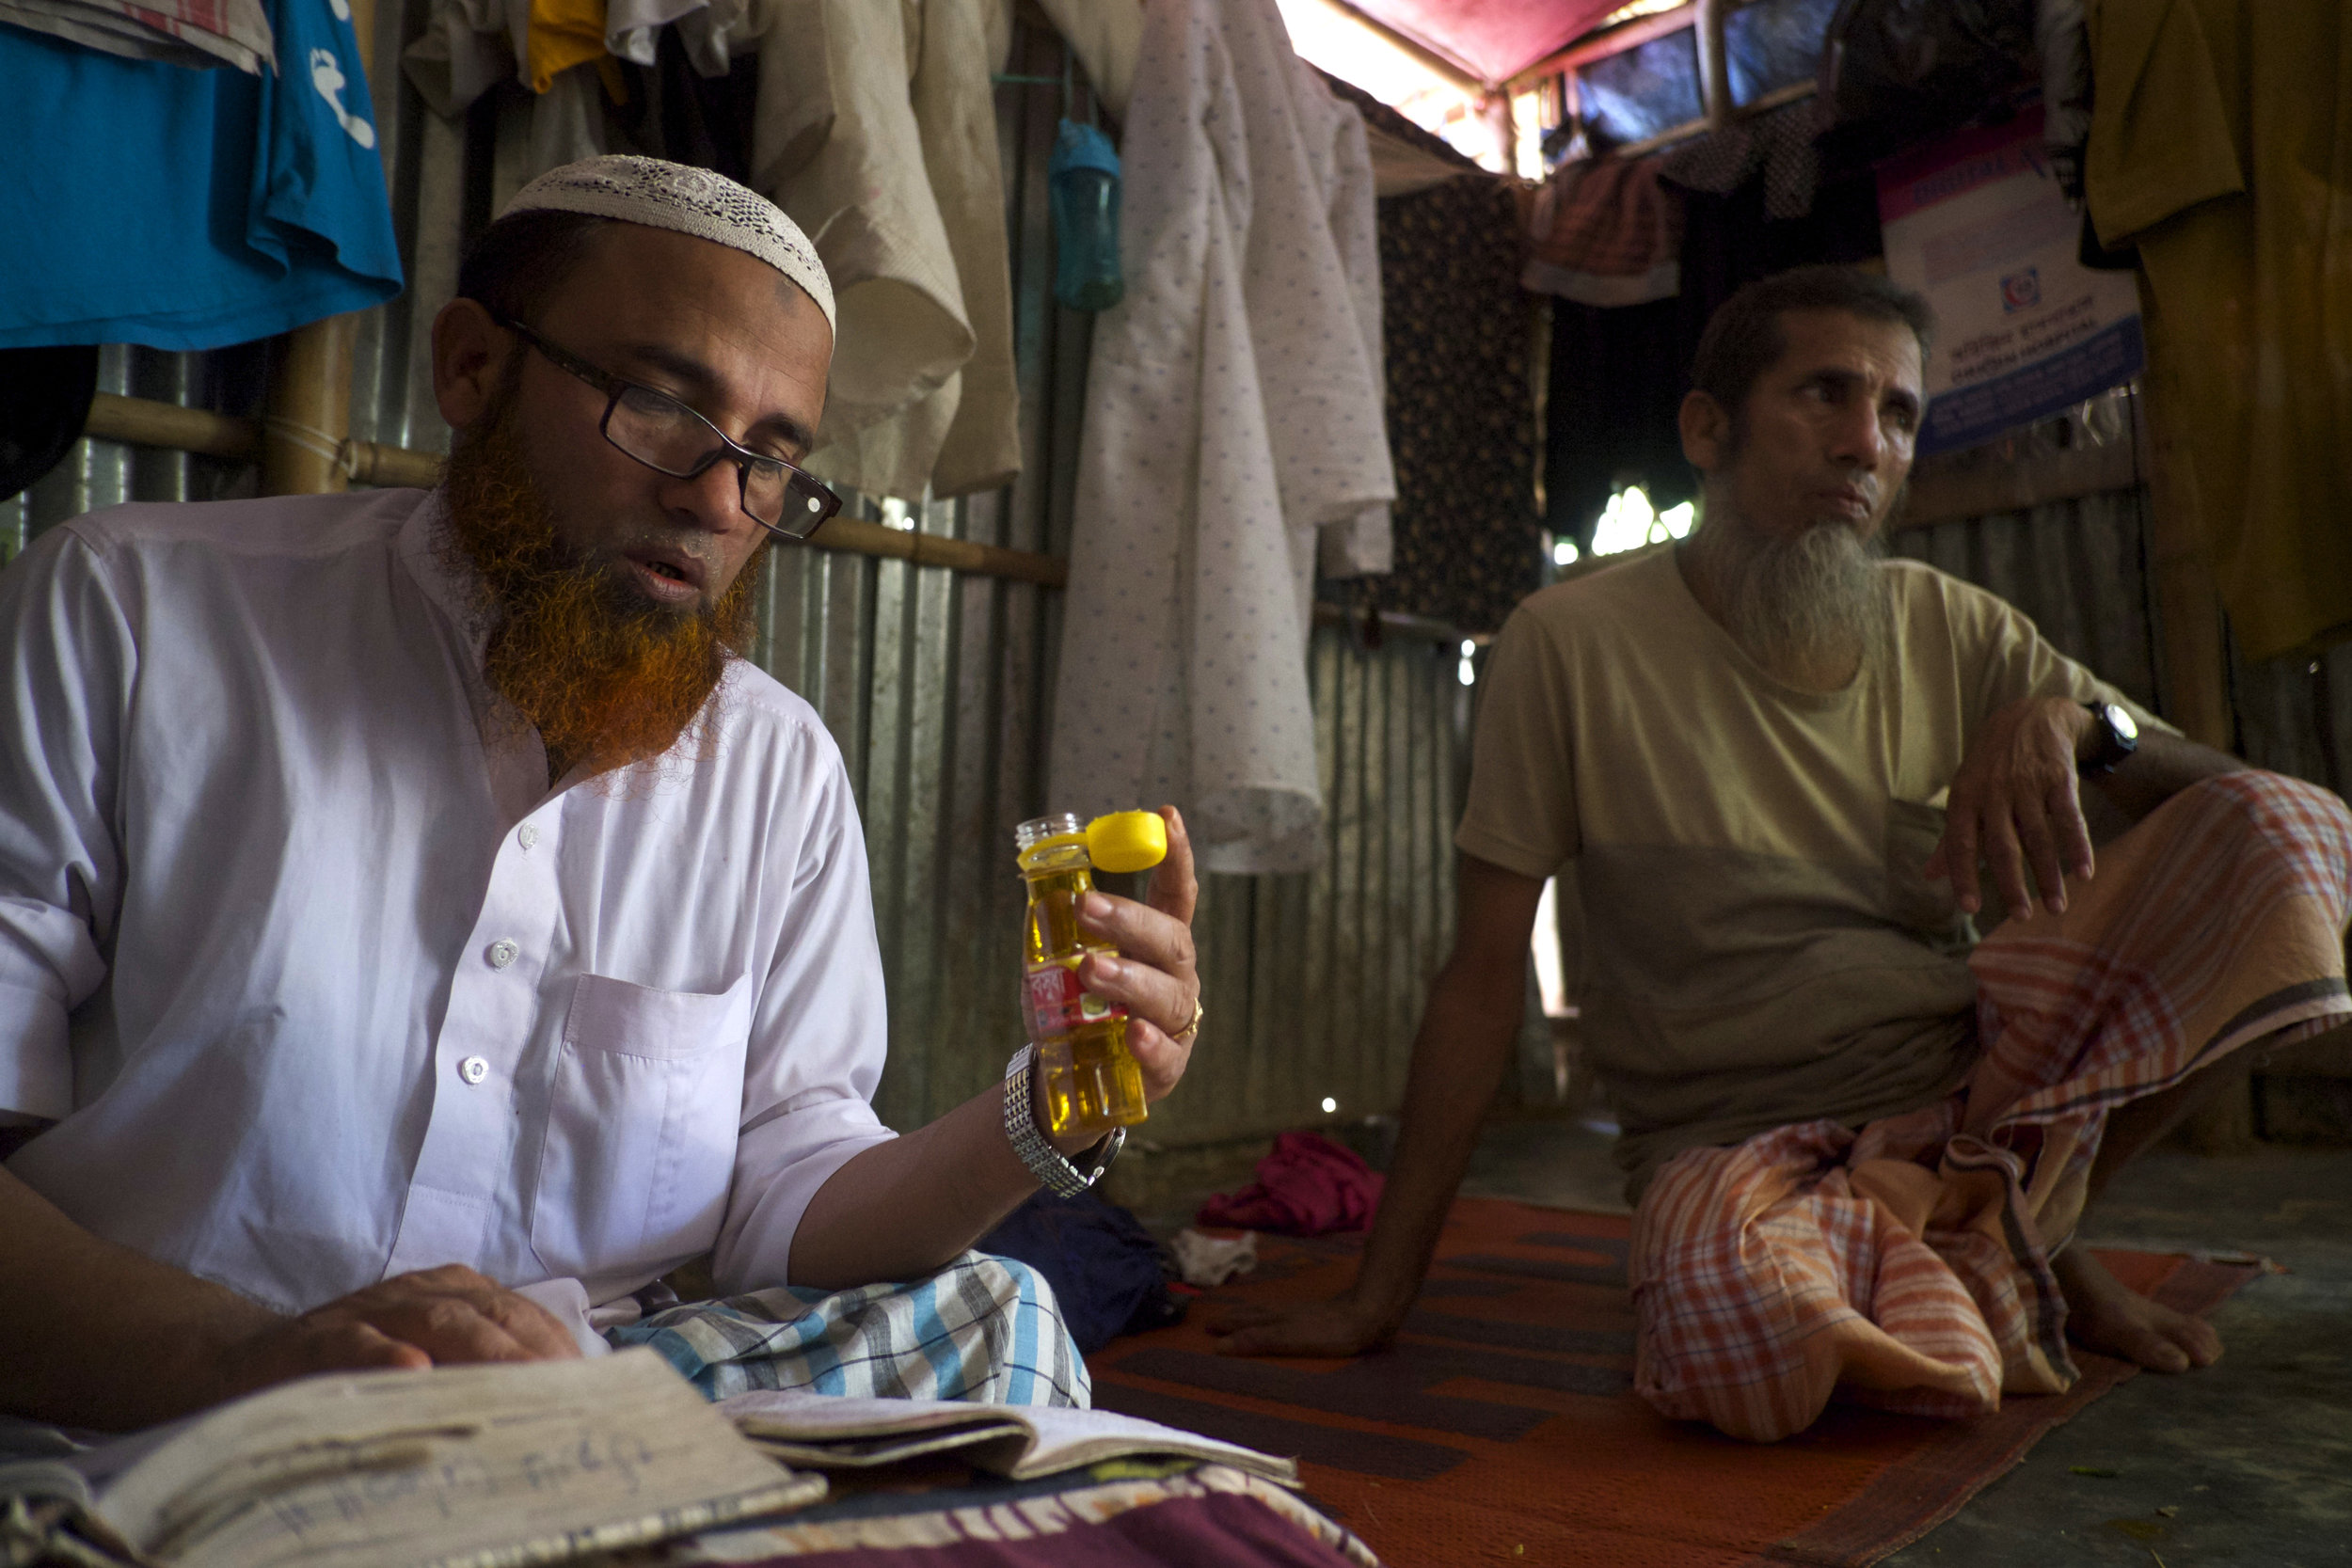 Gias Uddin, a religious teacher, recites verses from the Quran for Abdul Amin, right, who says that he has been in pain since he fled Myanmar in 2017. (Creid